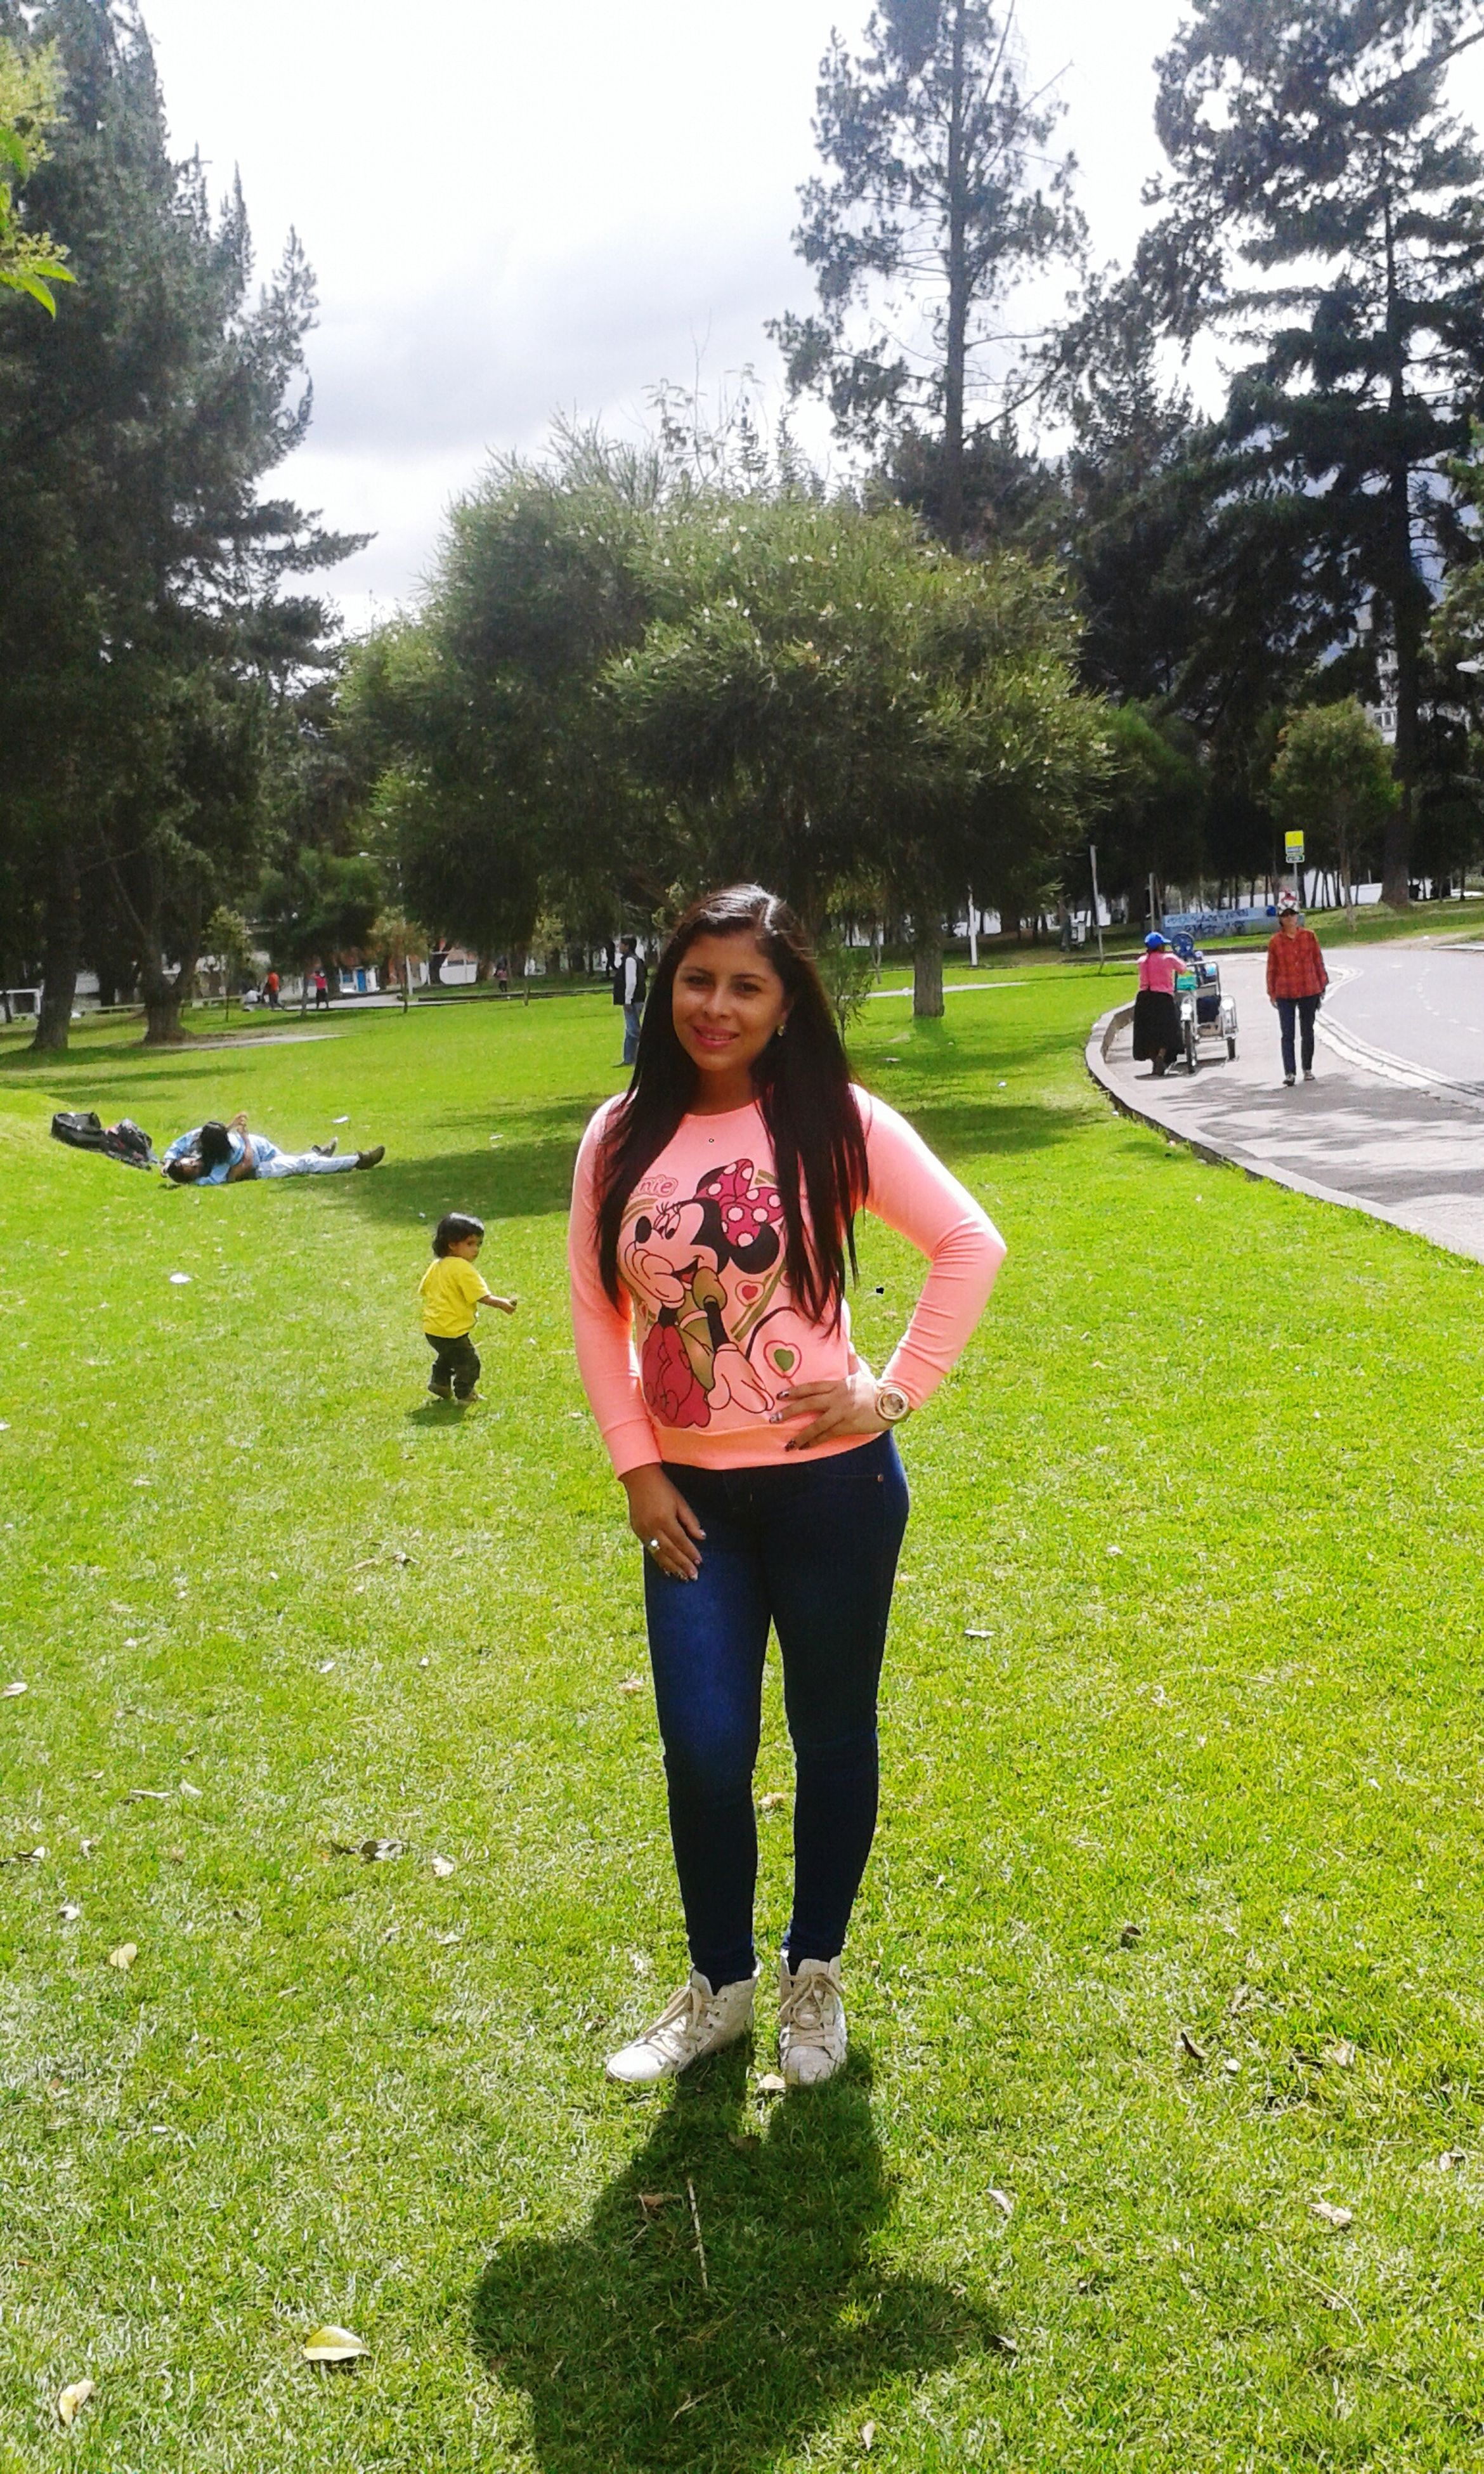 lifestyles, leisure activity, tree, grass, casual clothing, park - man made space, person, full length, young women, young adult, looking at camera, front view, enjoyment, green color, park, smiling, girls, portrait